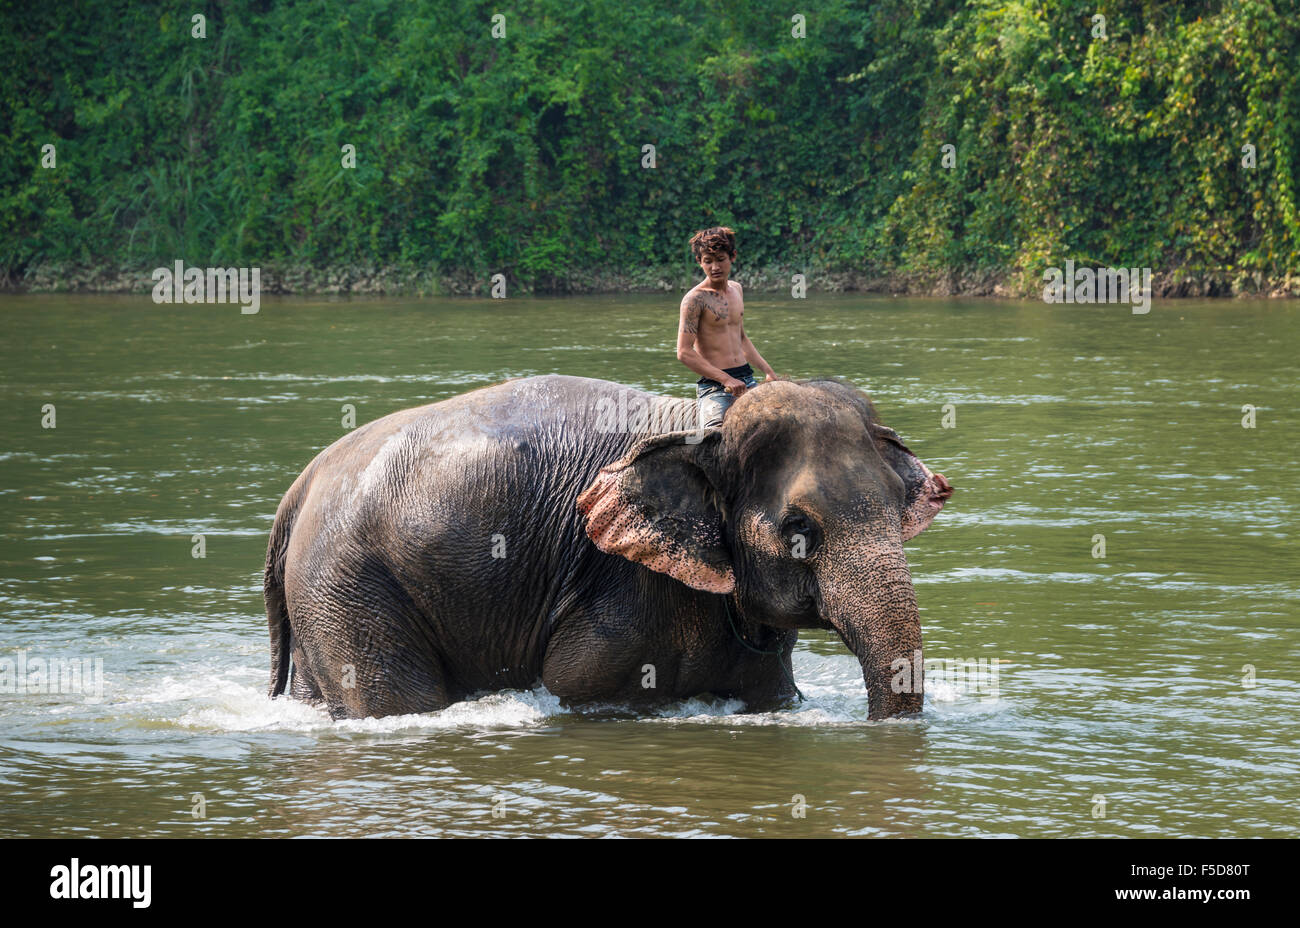 Mahout, local man riding elephant in water, Kanchanaburi Province, Central Thailand, Thailand - Stock Image